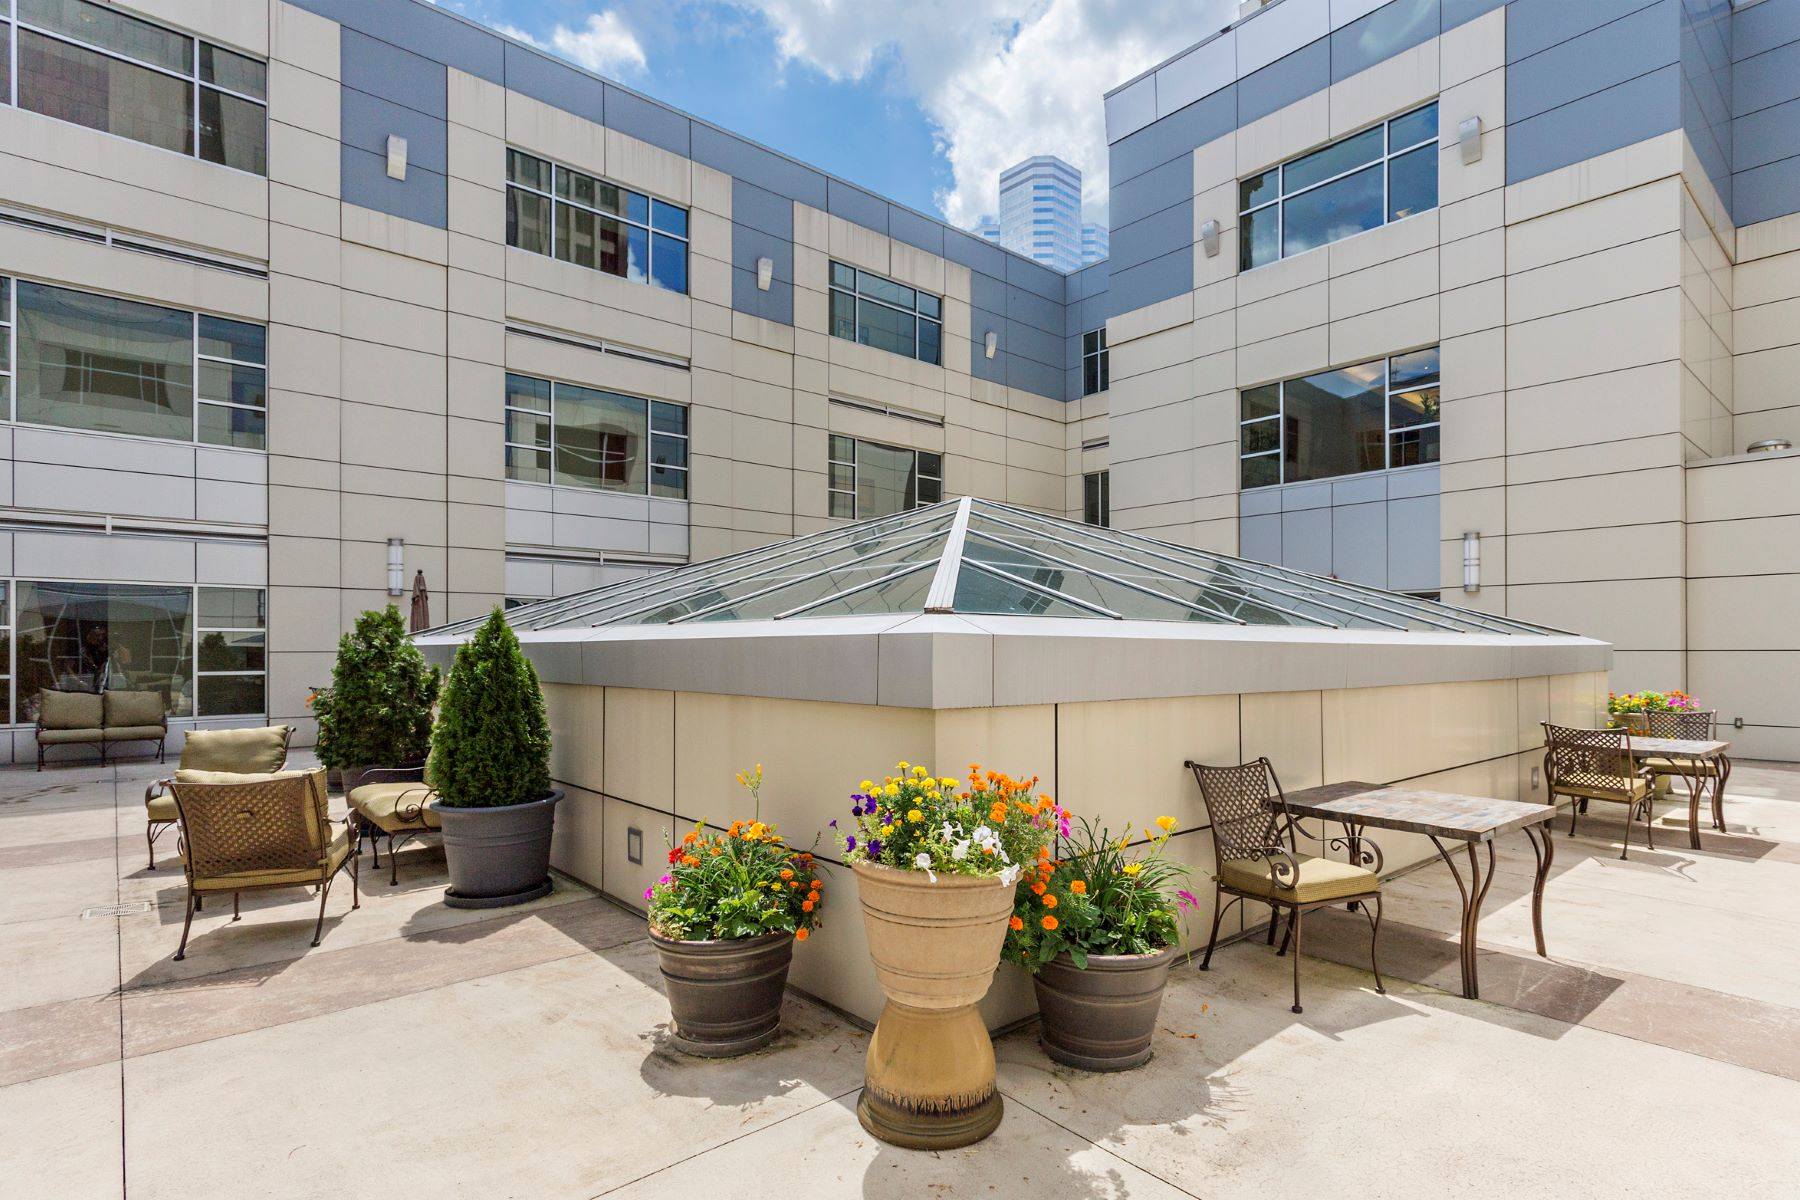 Additional photo for property listing at Downtown Condominium with City Views 301 5th Avenue No. 611 Pittsburgh, Pennsylvania 15222 United States